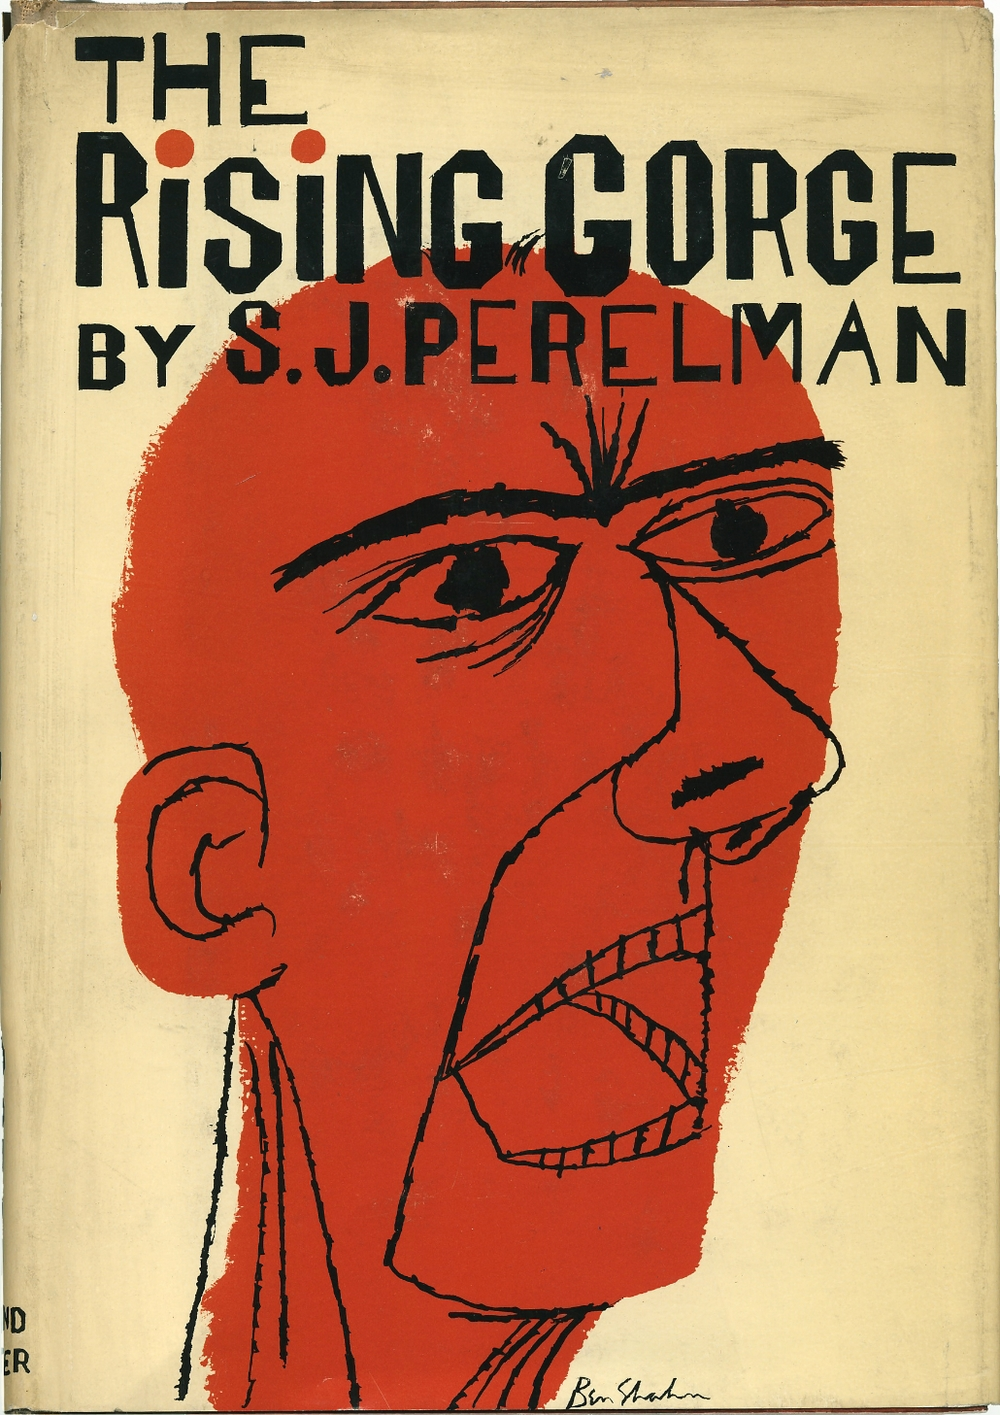 The Rising Gorge by S.J. Perelman 1961